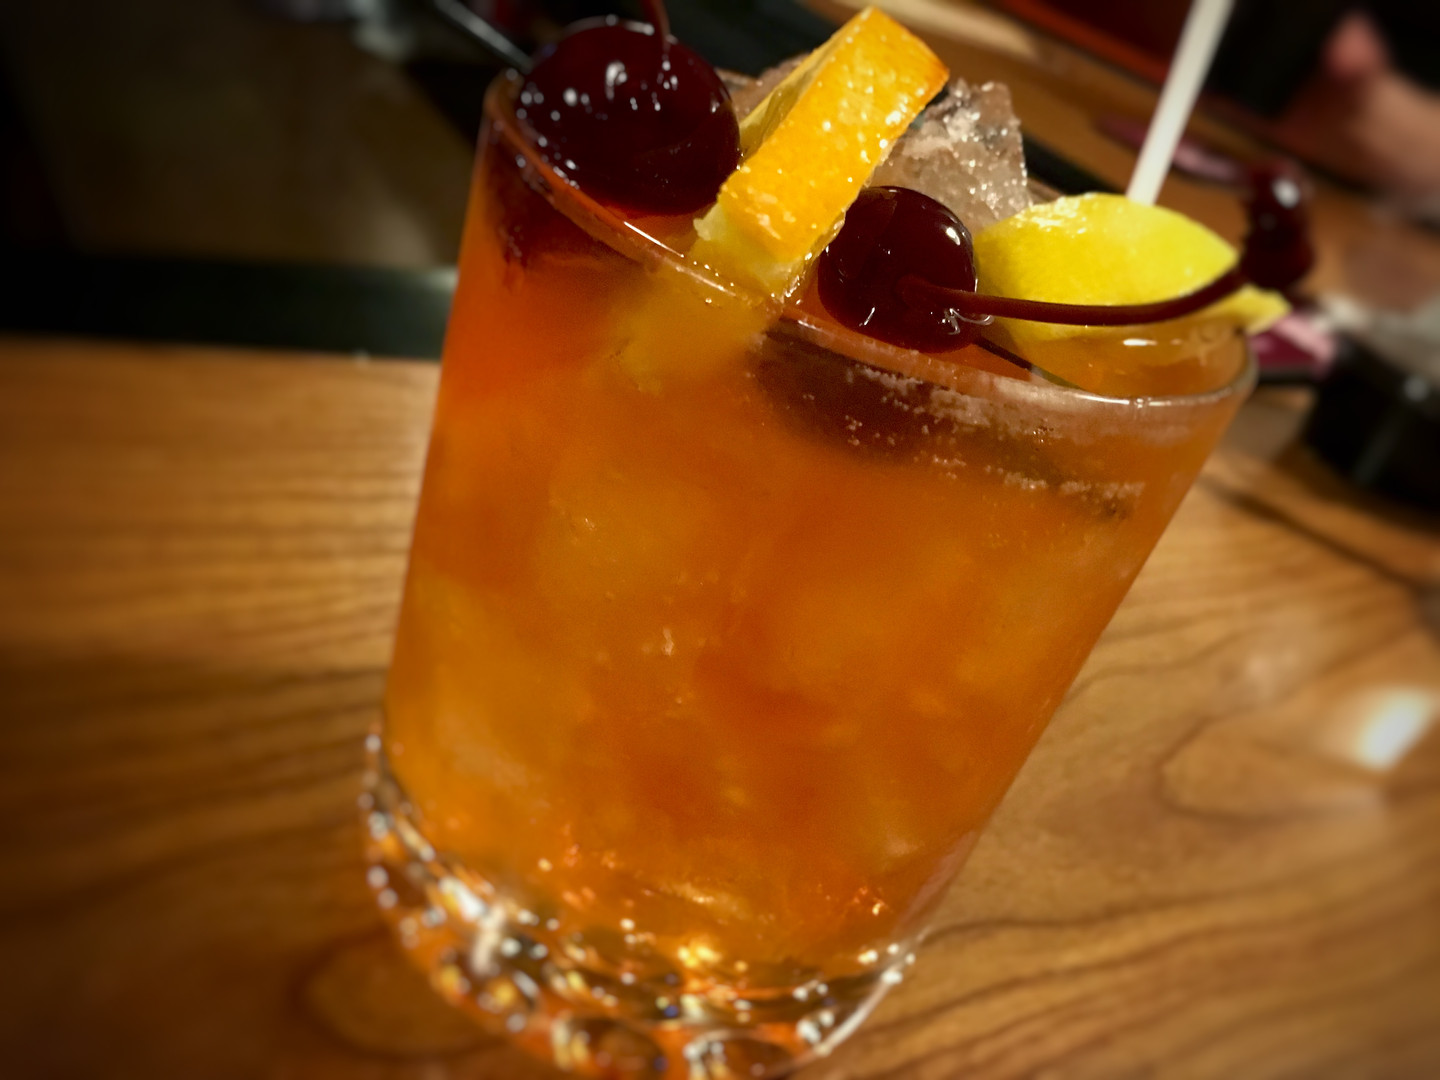 Classic Brandy Old Fashioned